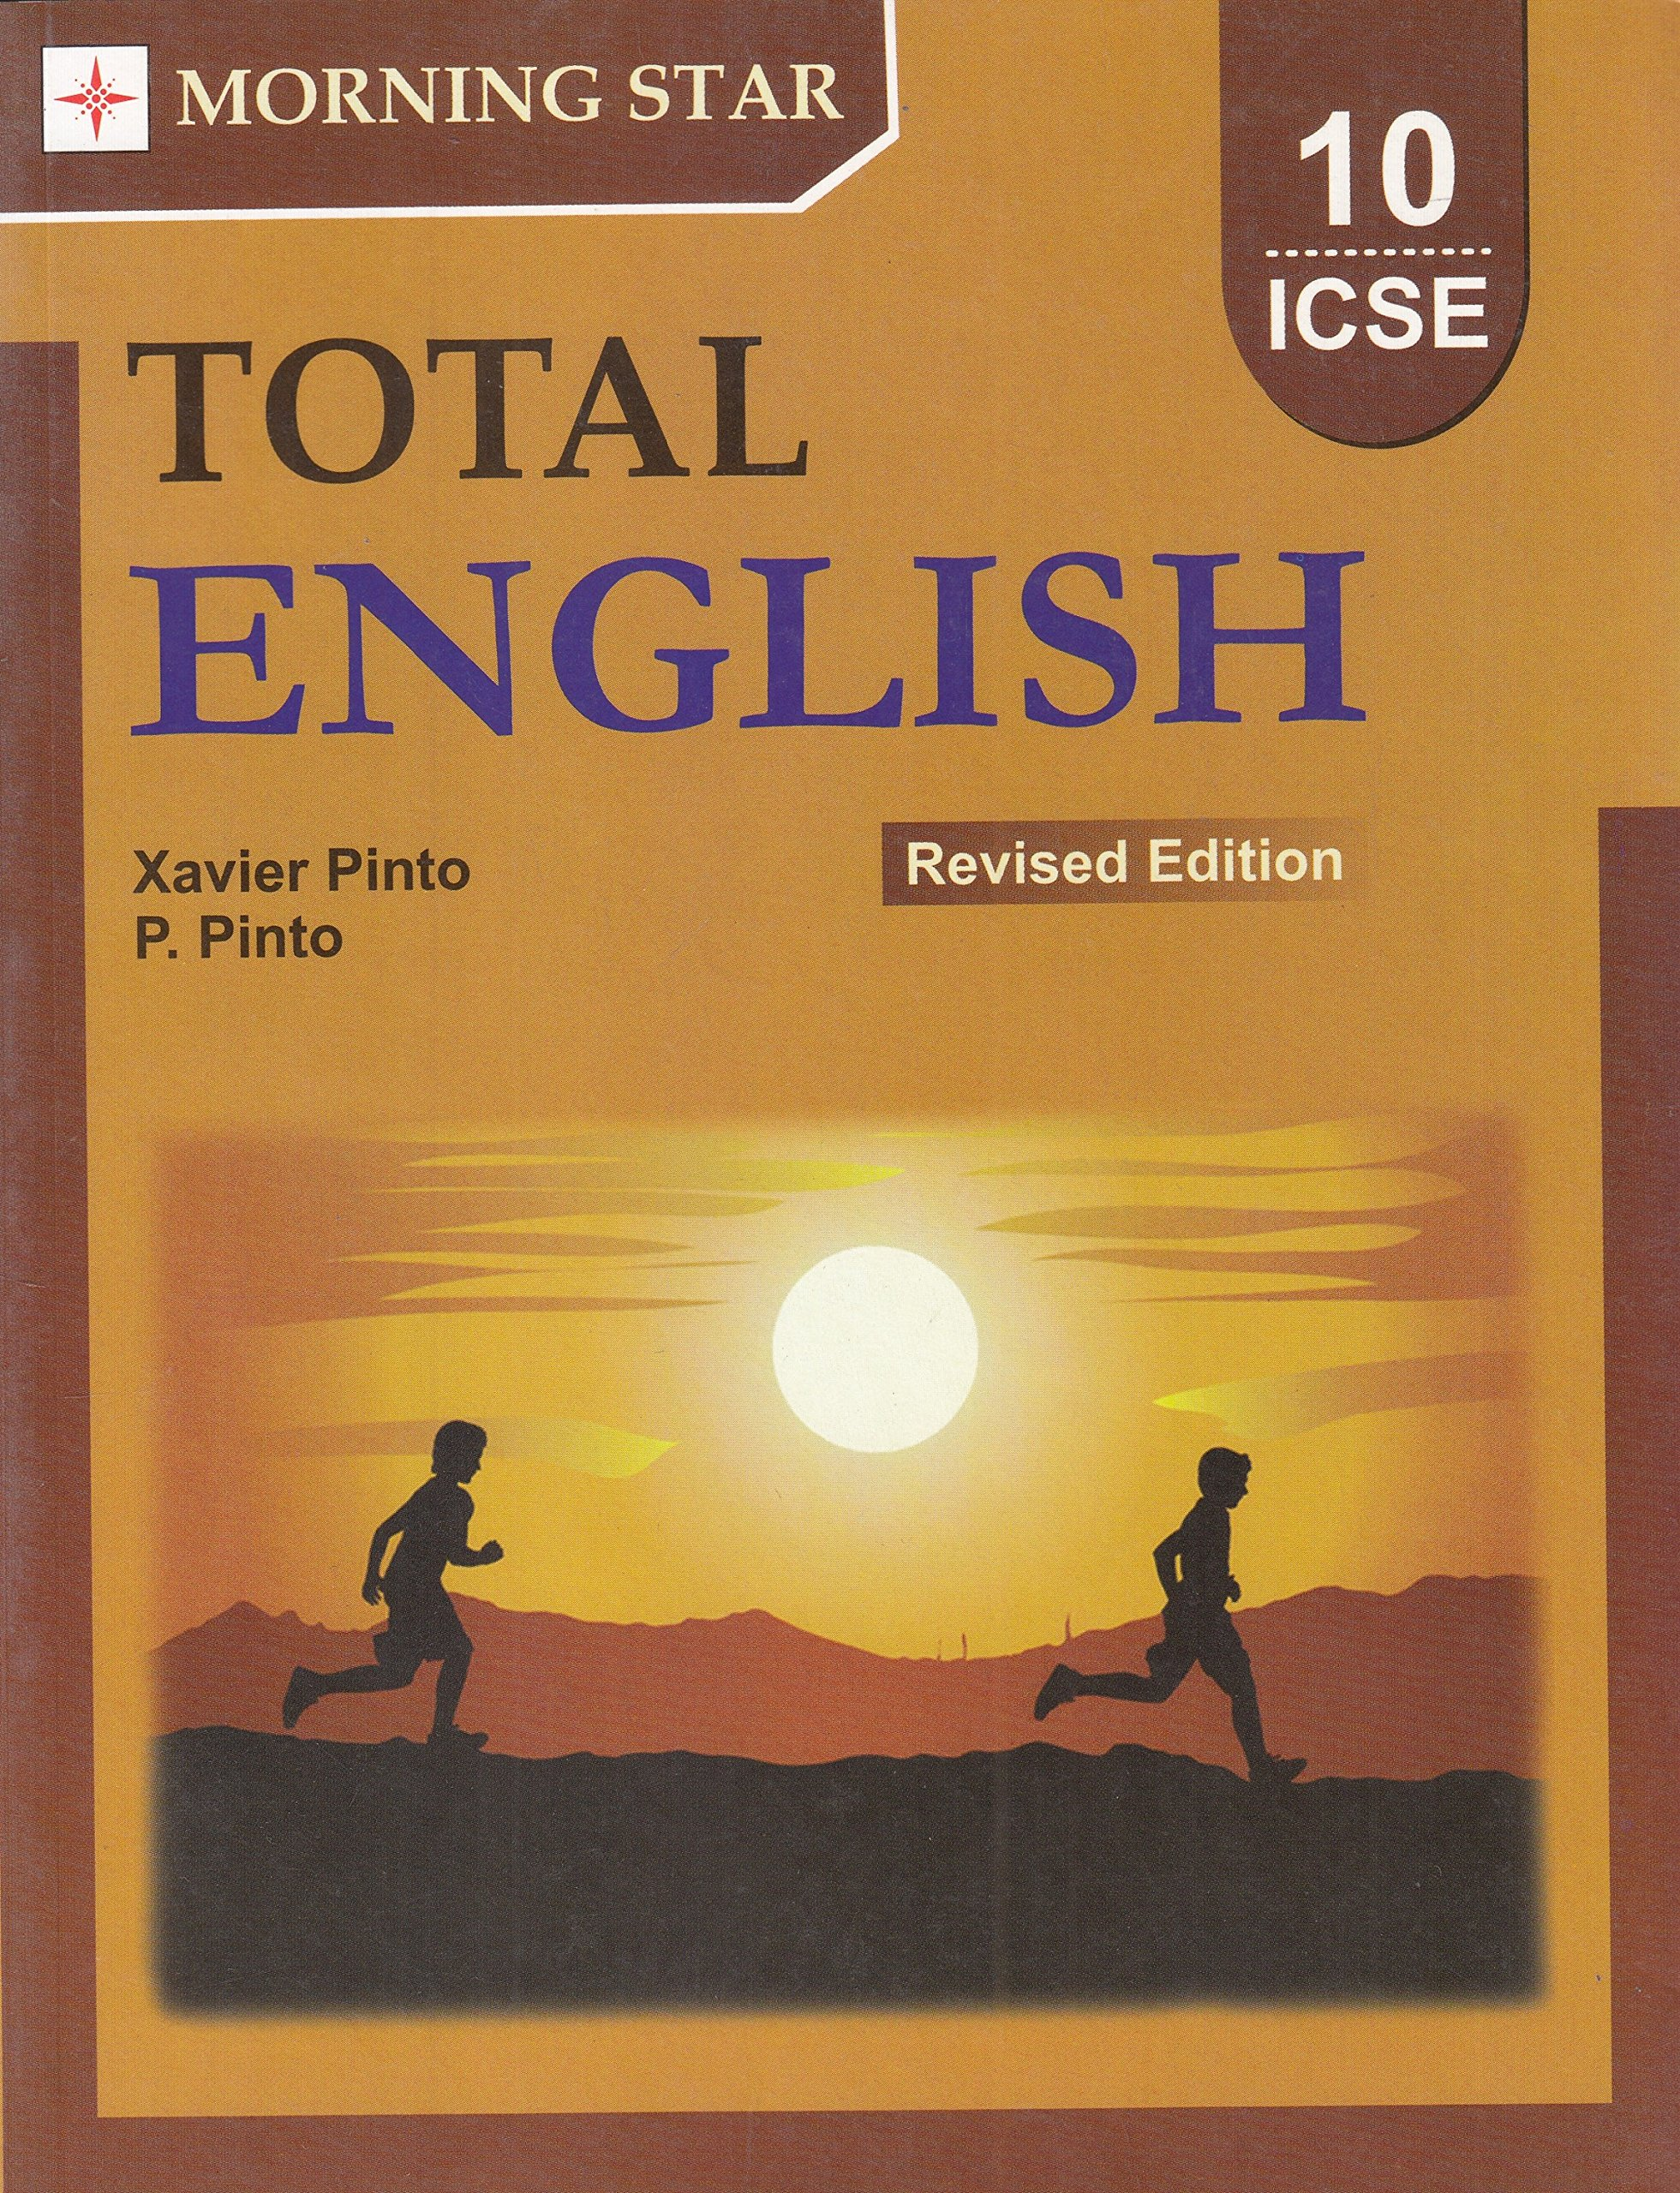 total english 10 icse solved